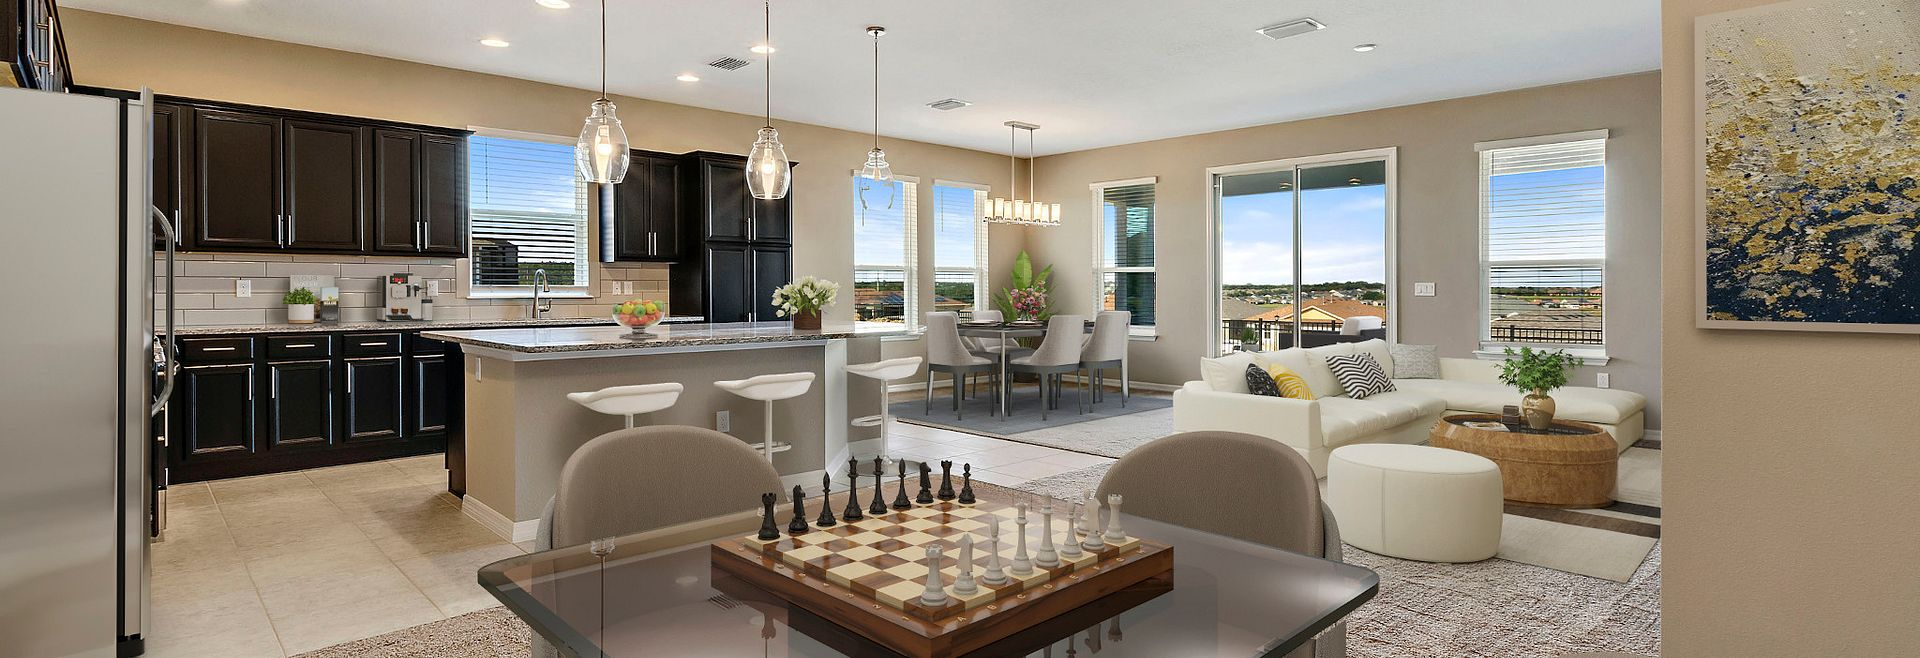 Trilogy Orlando Quick Move In Home Virtually Staged Great Room